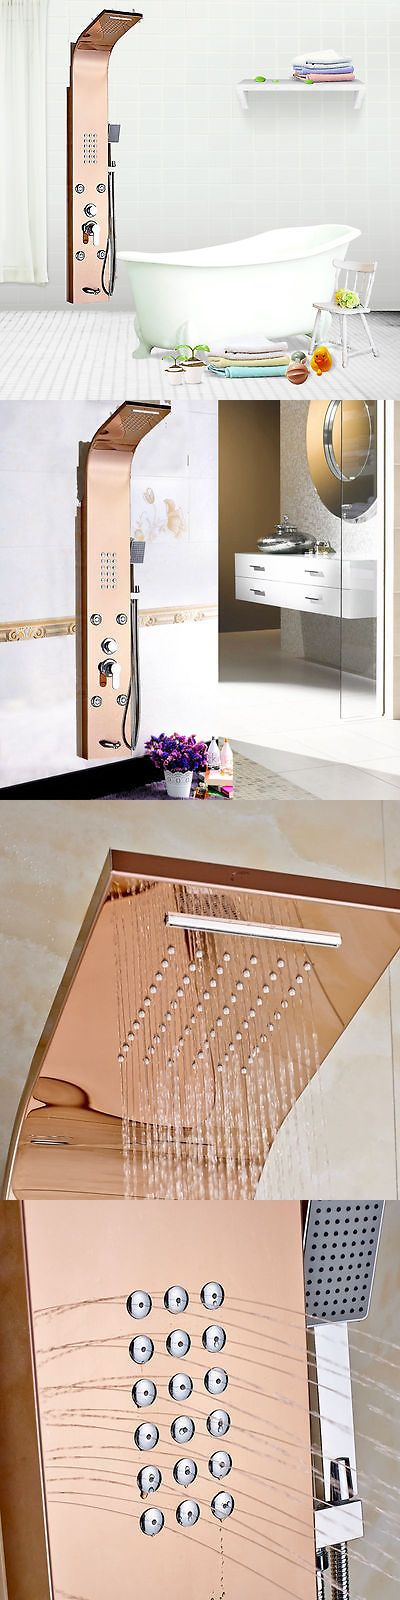 Shower Panels and Massagers 121849: Rose Golden Waterfall Shower Column Massage Jets Mixer Spout Hand Shower Panel -> BUY IT NOW ONLY: $119.7 on eBay!